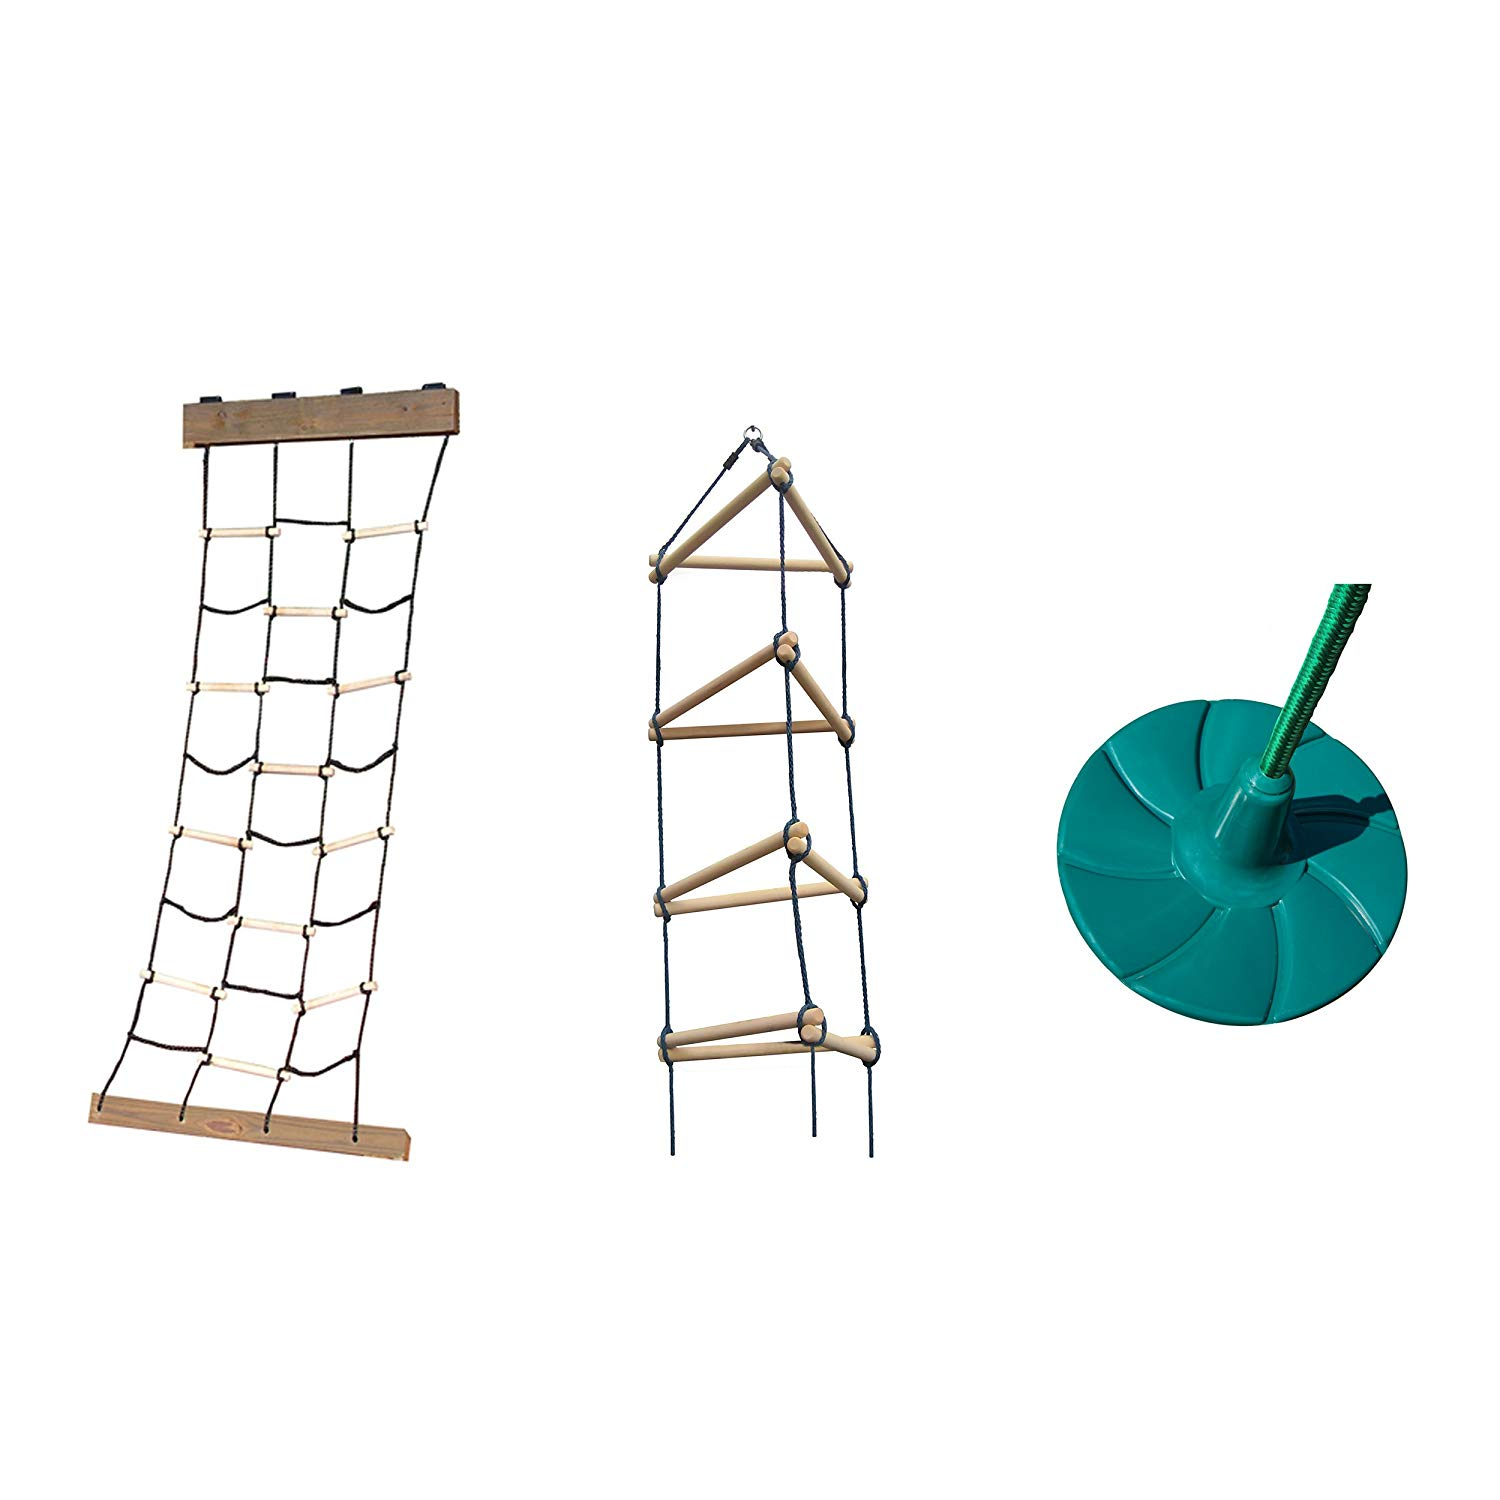 Cargo Climbing Net, Triangle Rope Ladder and Disc Swing Bundle - Includes Climbing Accessories and Disc Swing for Outdoor Swing Sets, Backyard Play Sets, etc.